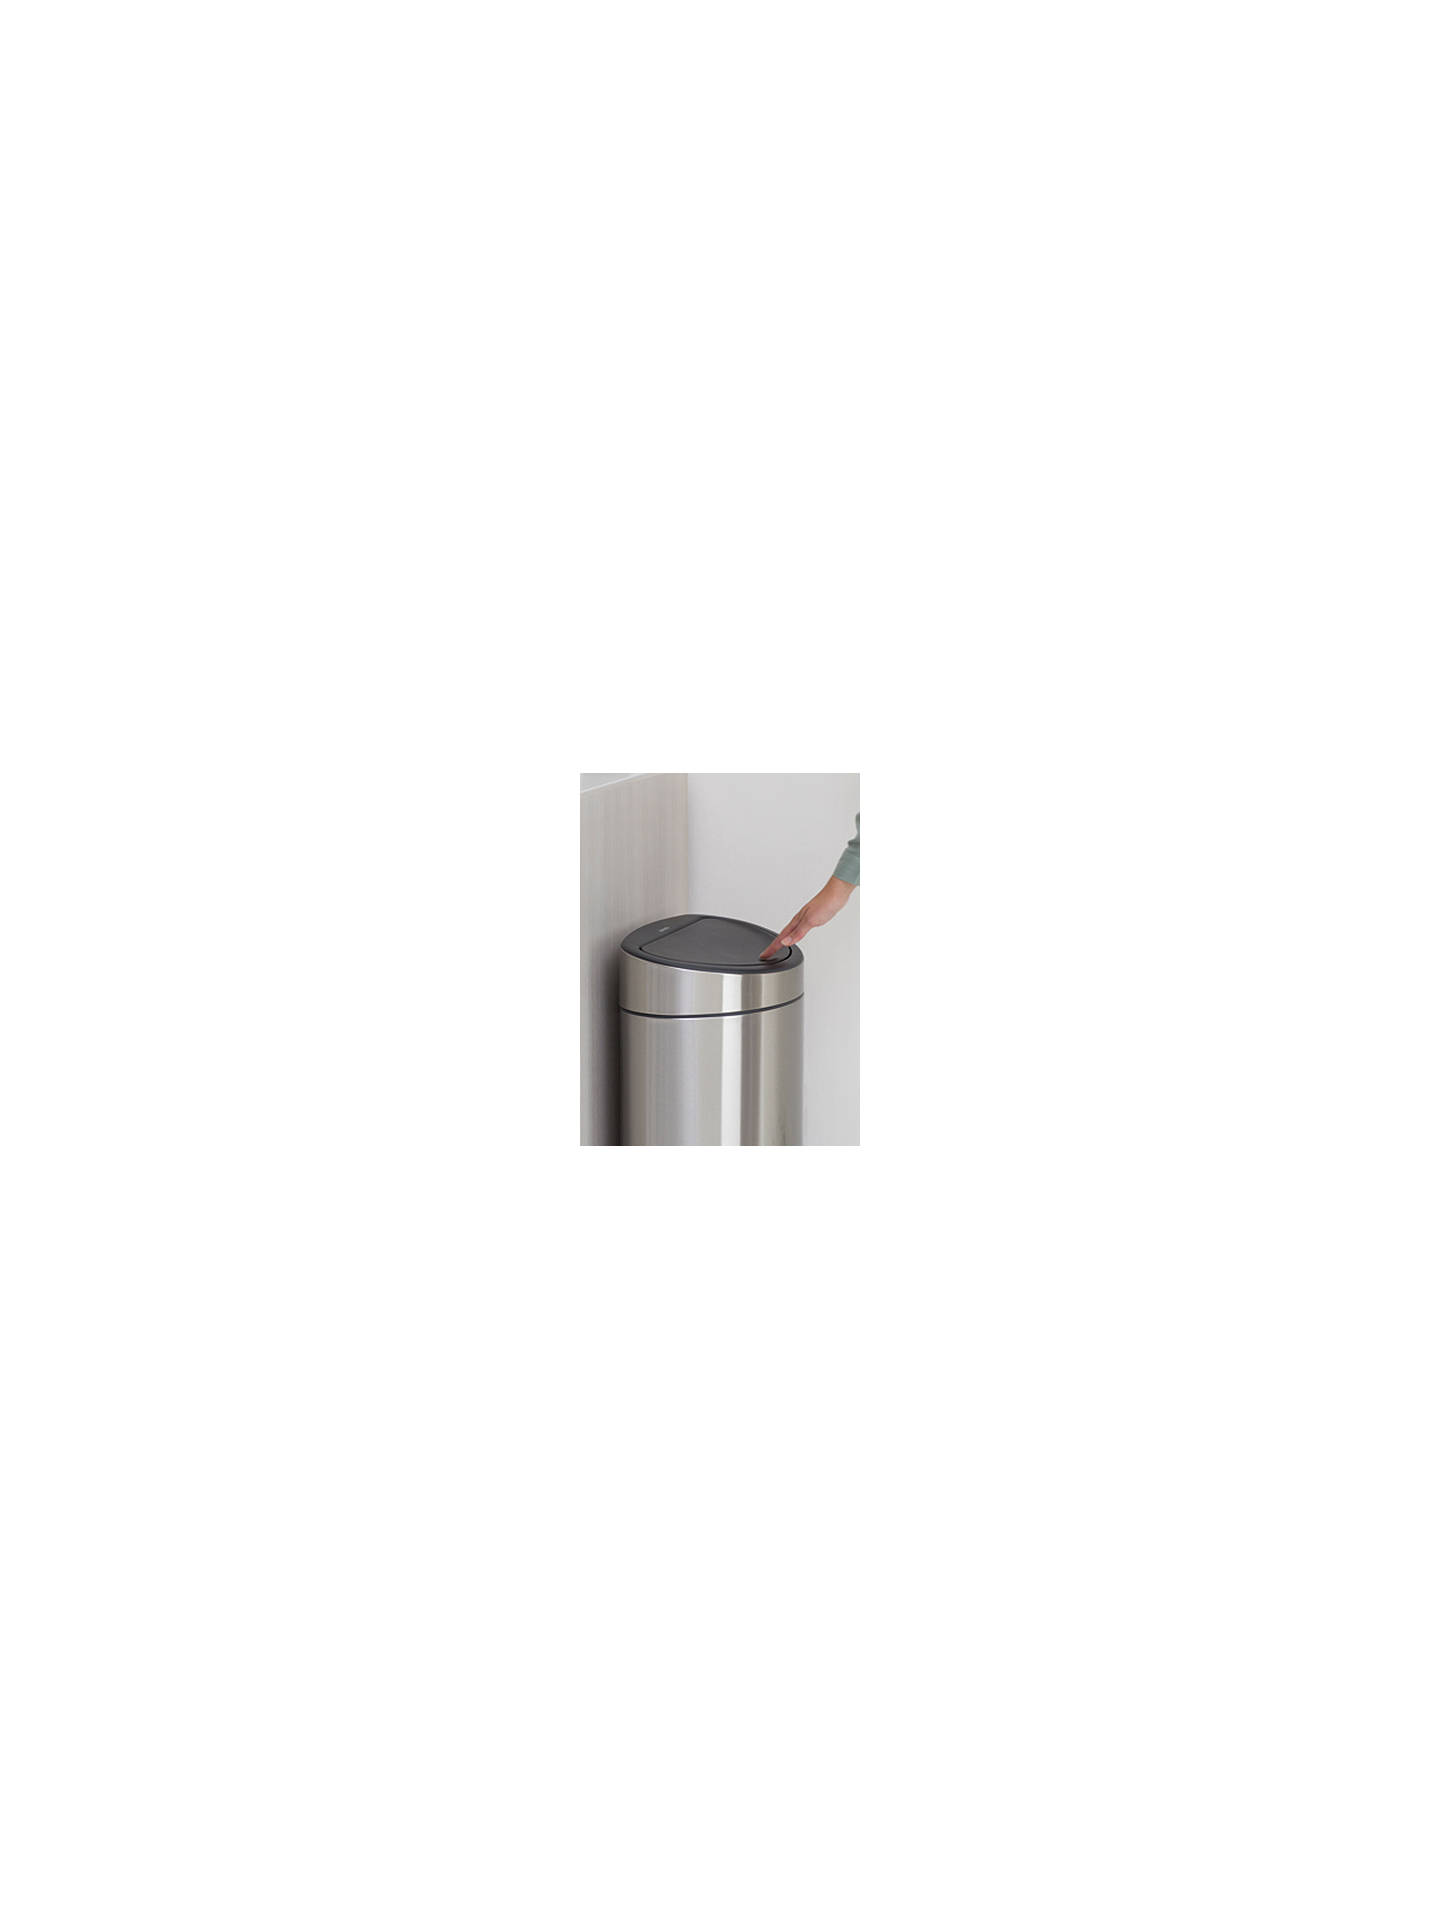 Buy Brabantia Twin Touch Recycling Bin, New Matt Steel, 23/10L Online at johnlewis.com